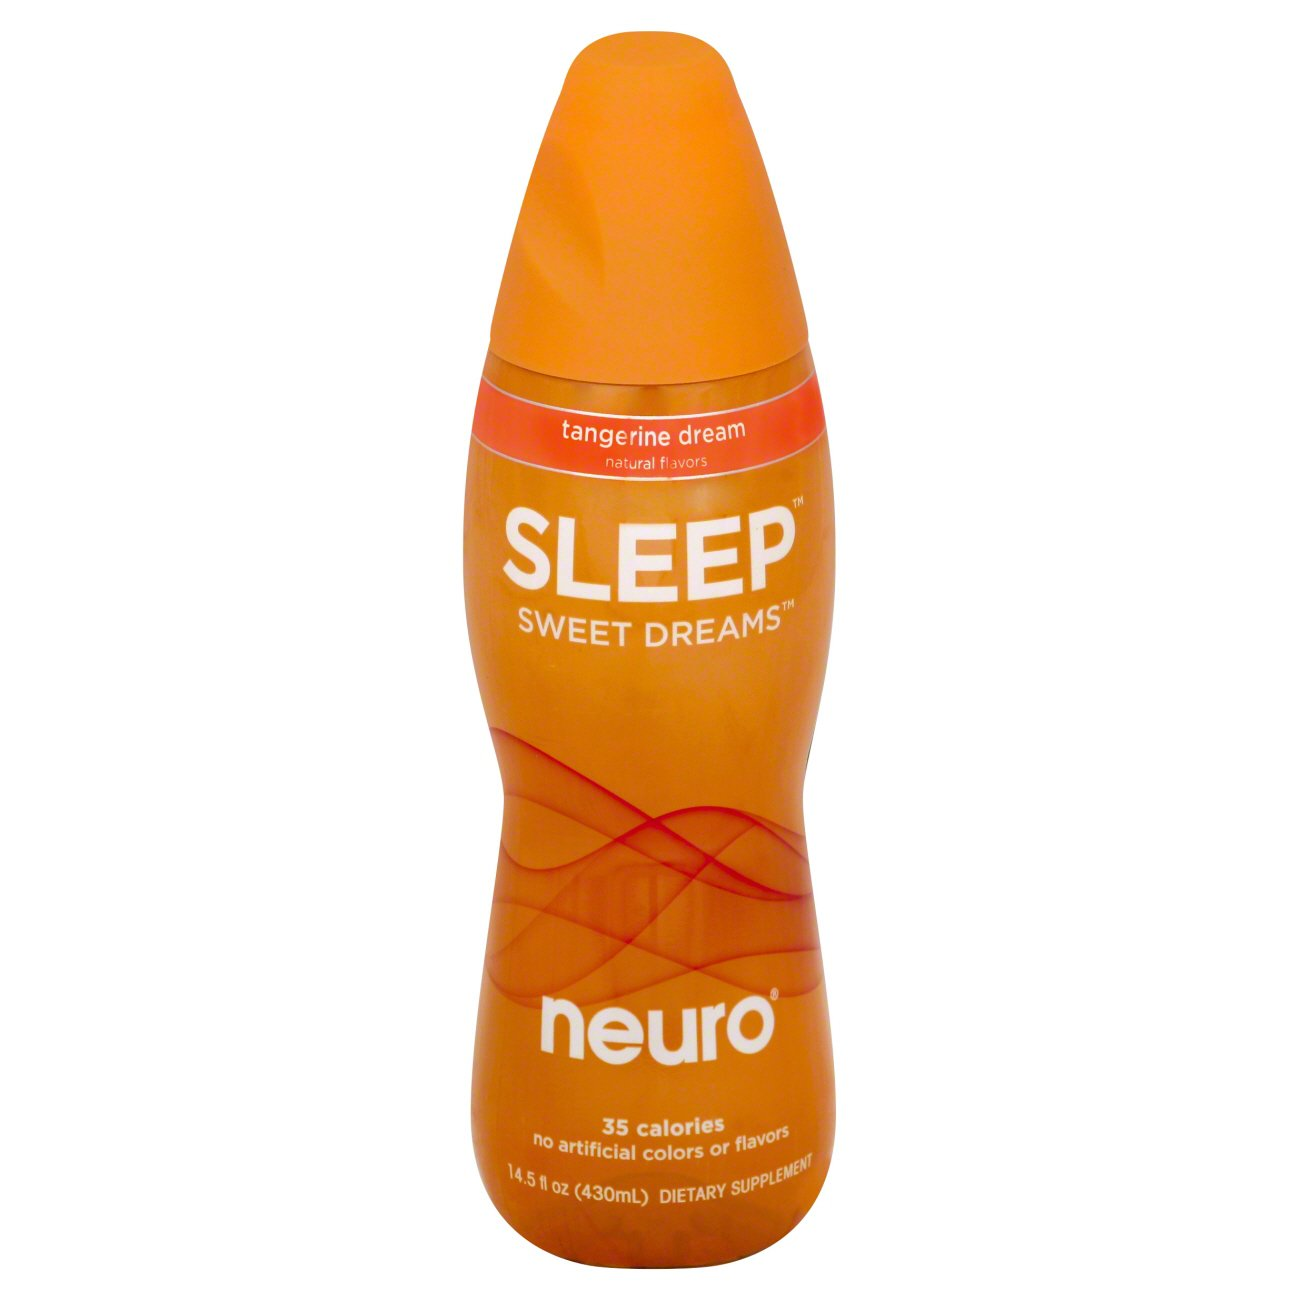 Neuro Sleep